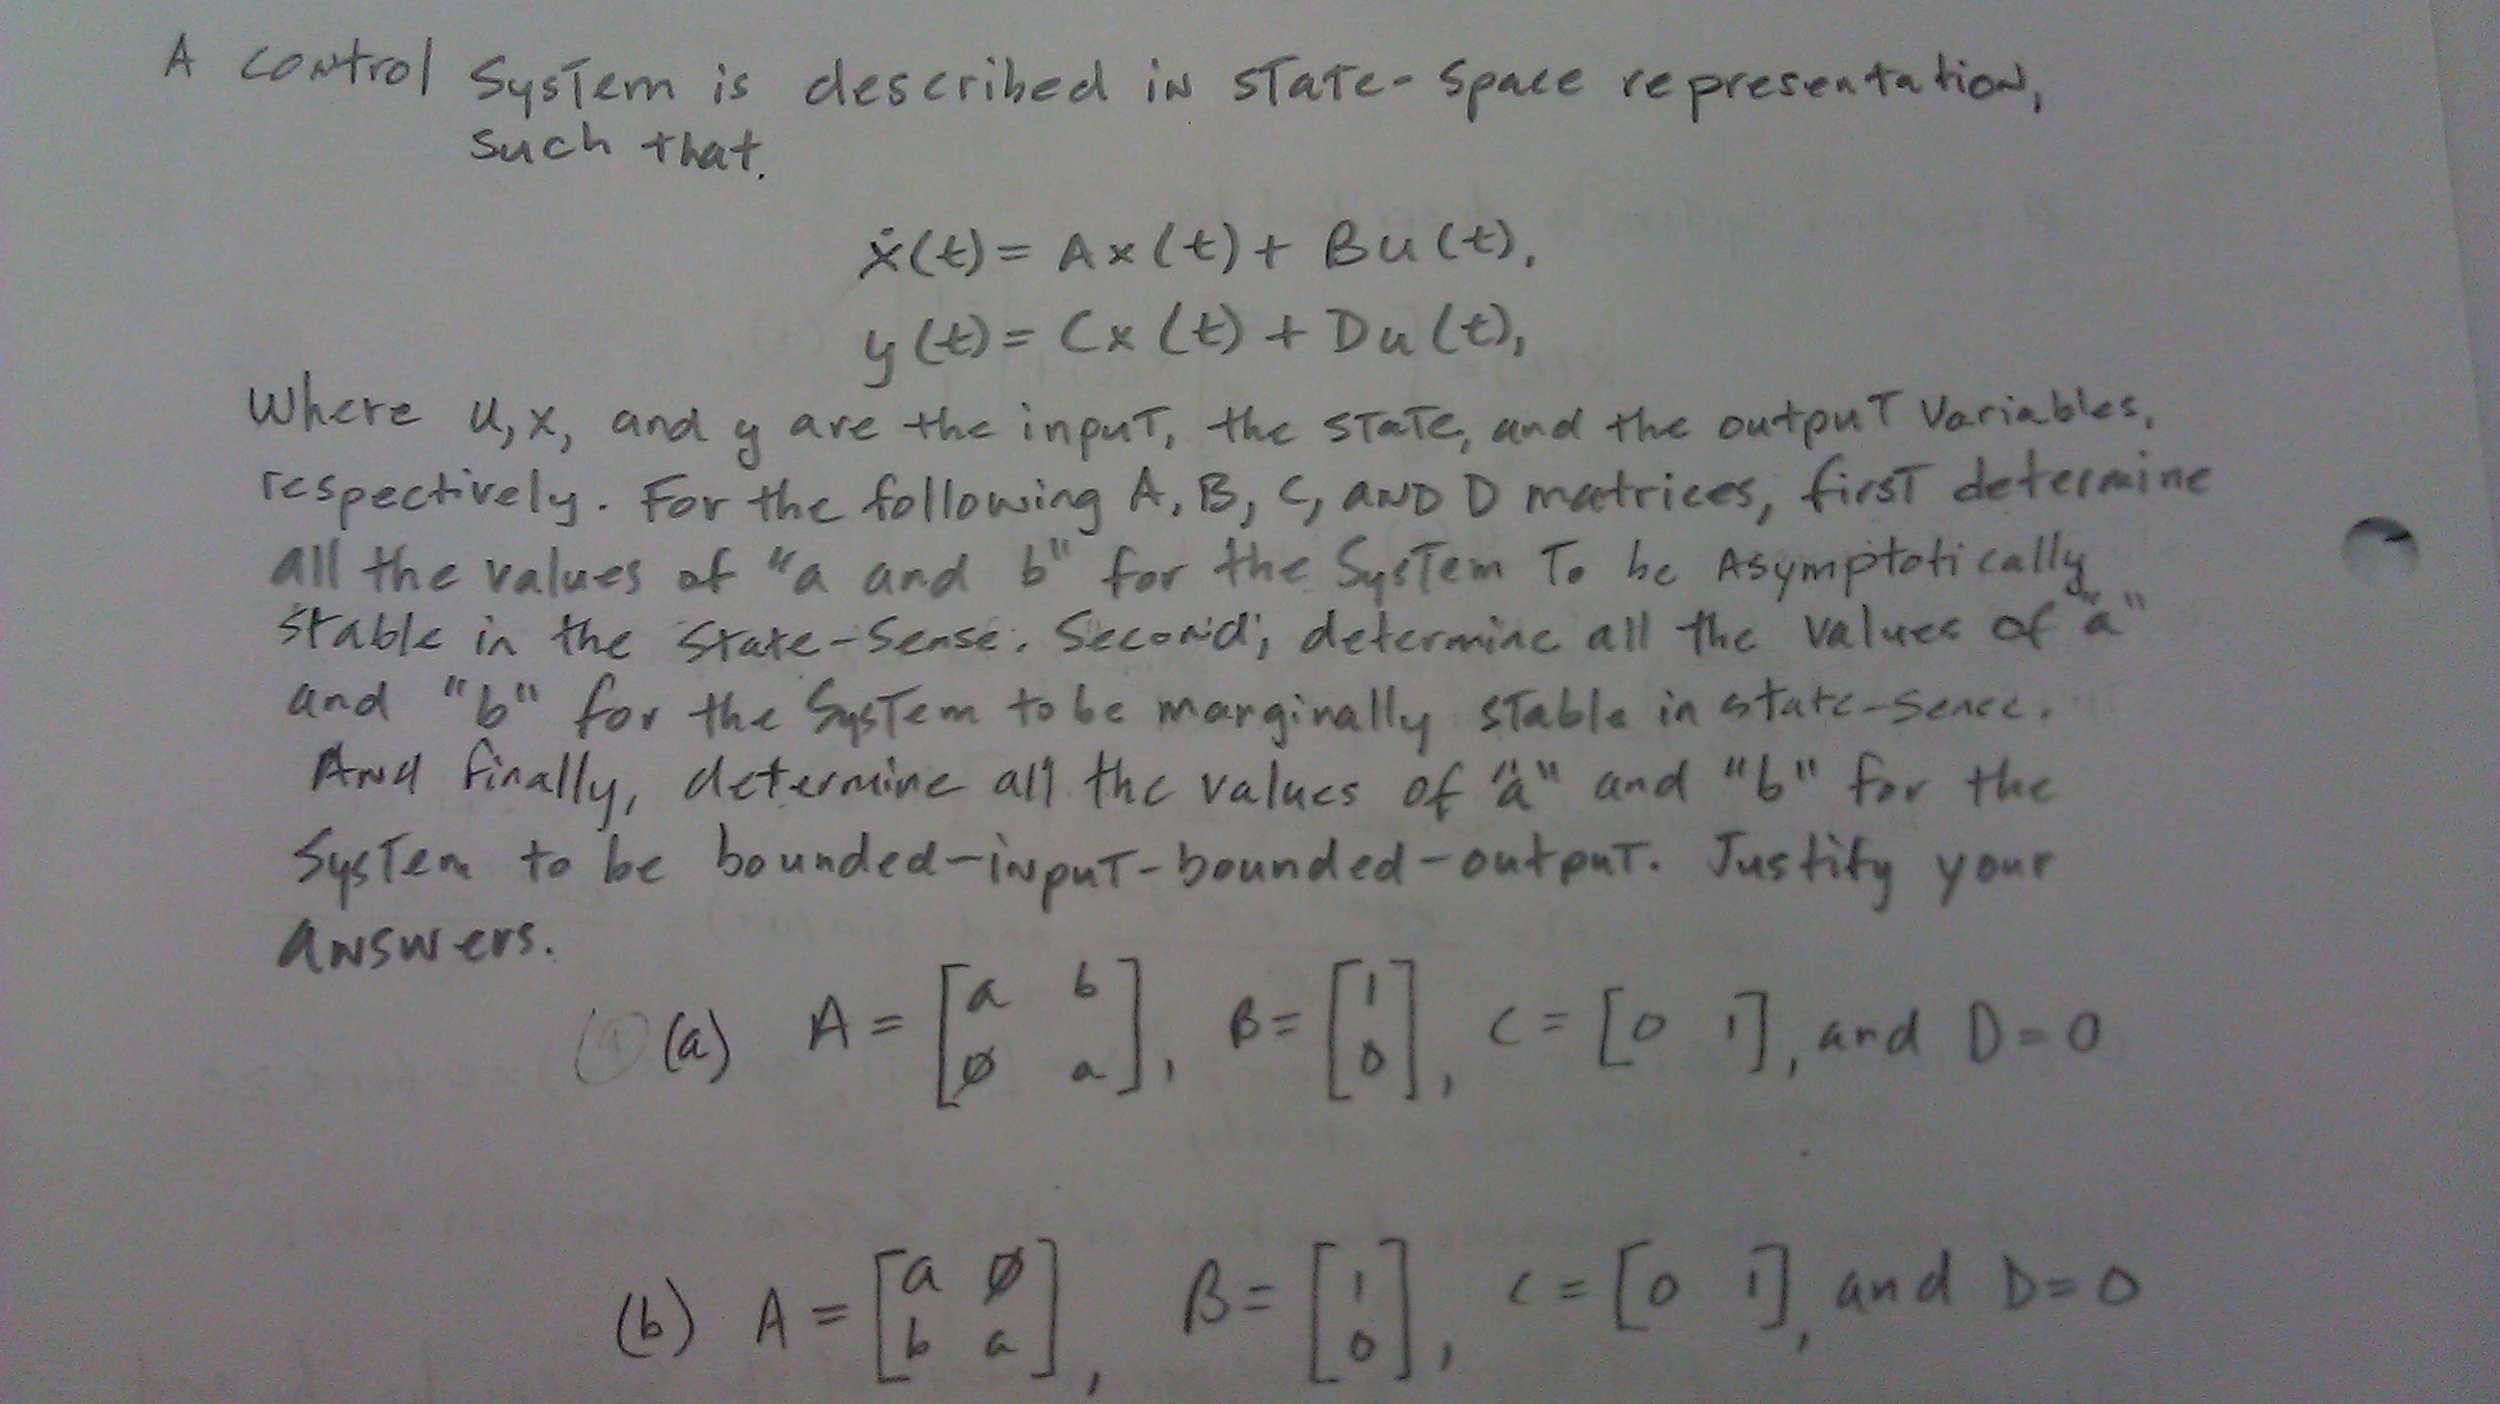 A control system is described in state-space repre